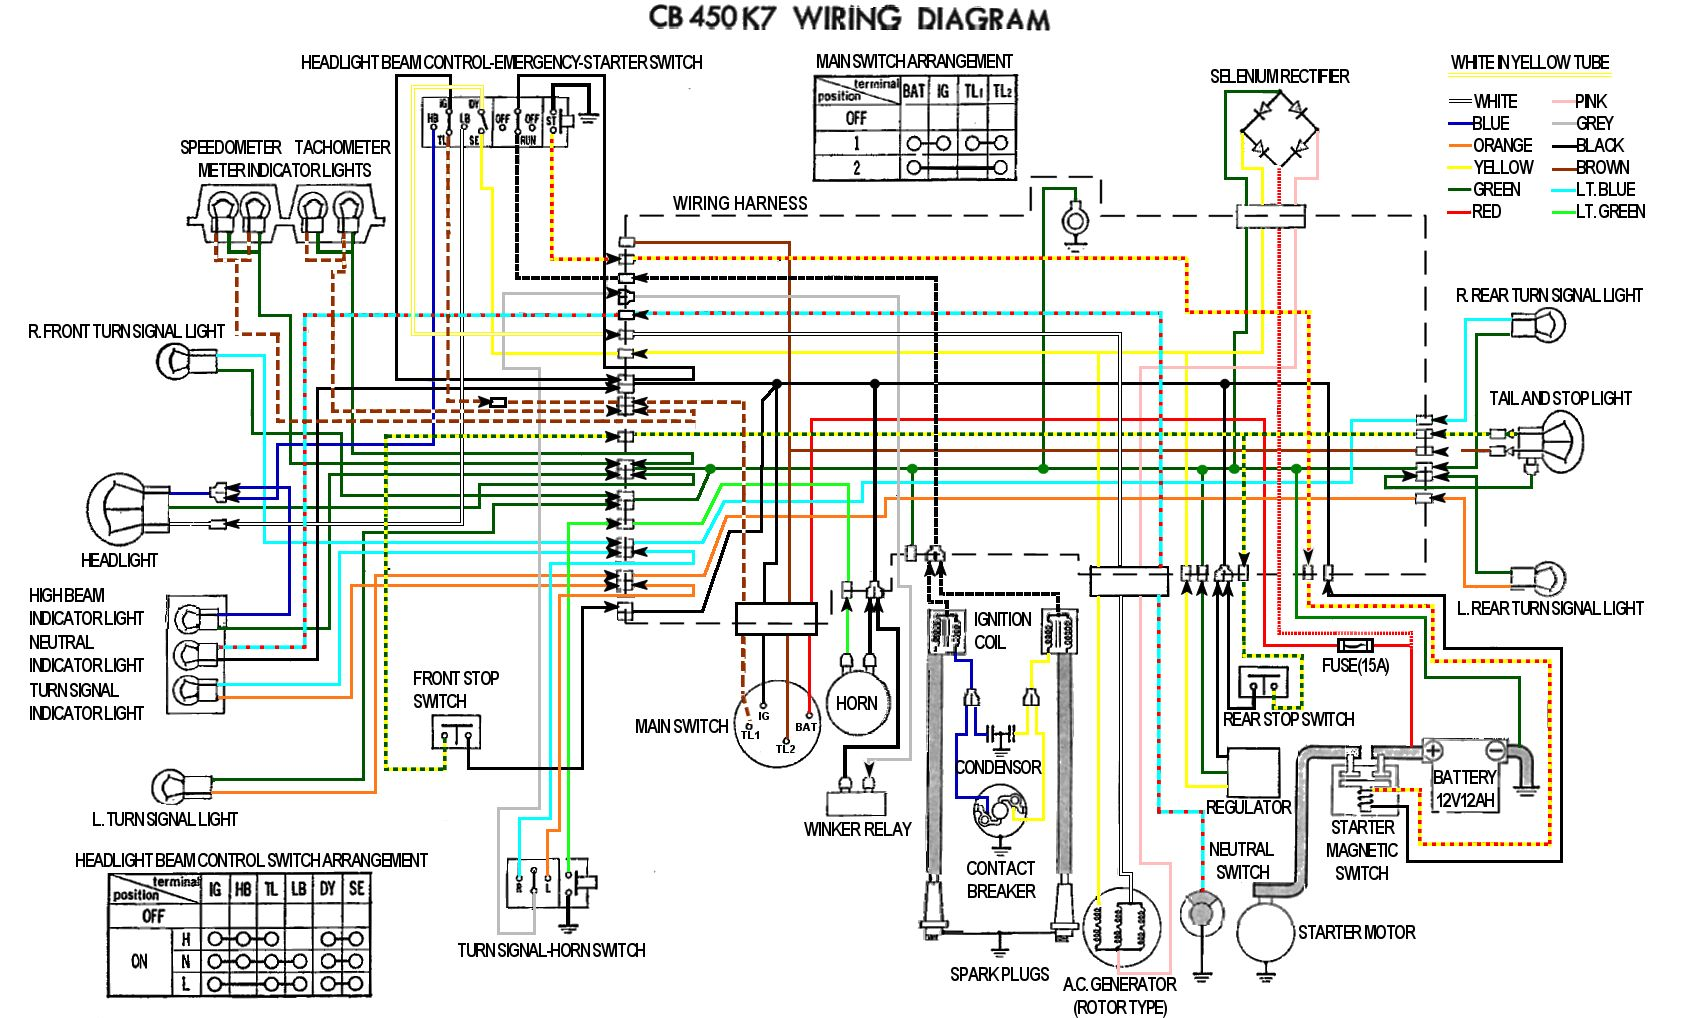 CB450 Color wiring diagram (now corrected)-factory-service-manual-wiring-harness2_compressed.jpg